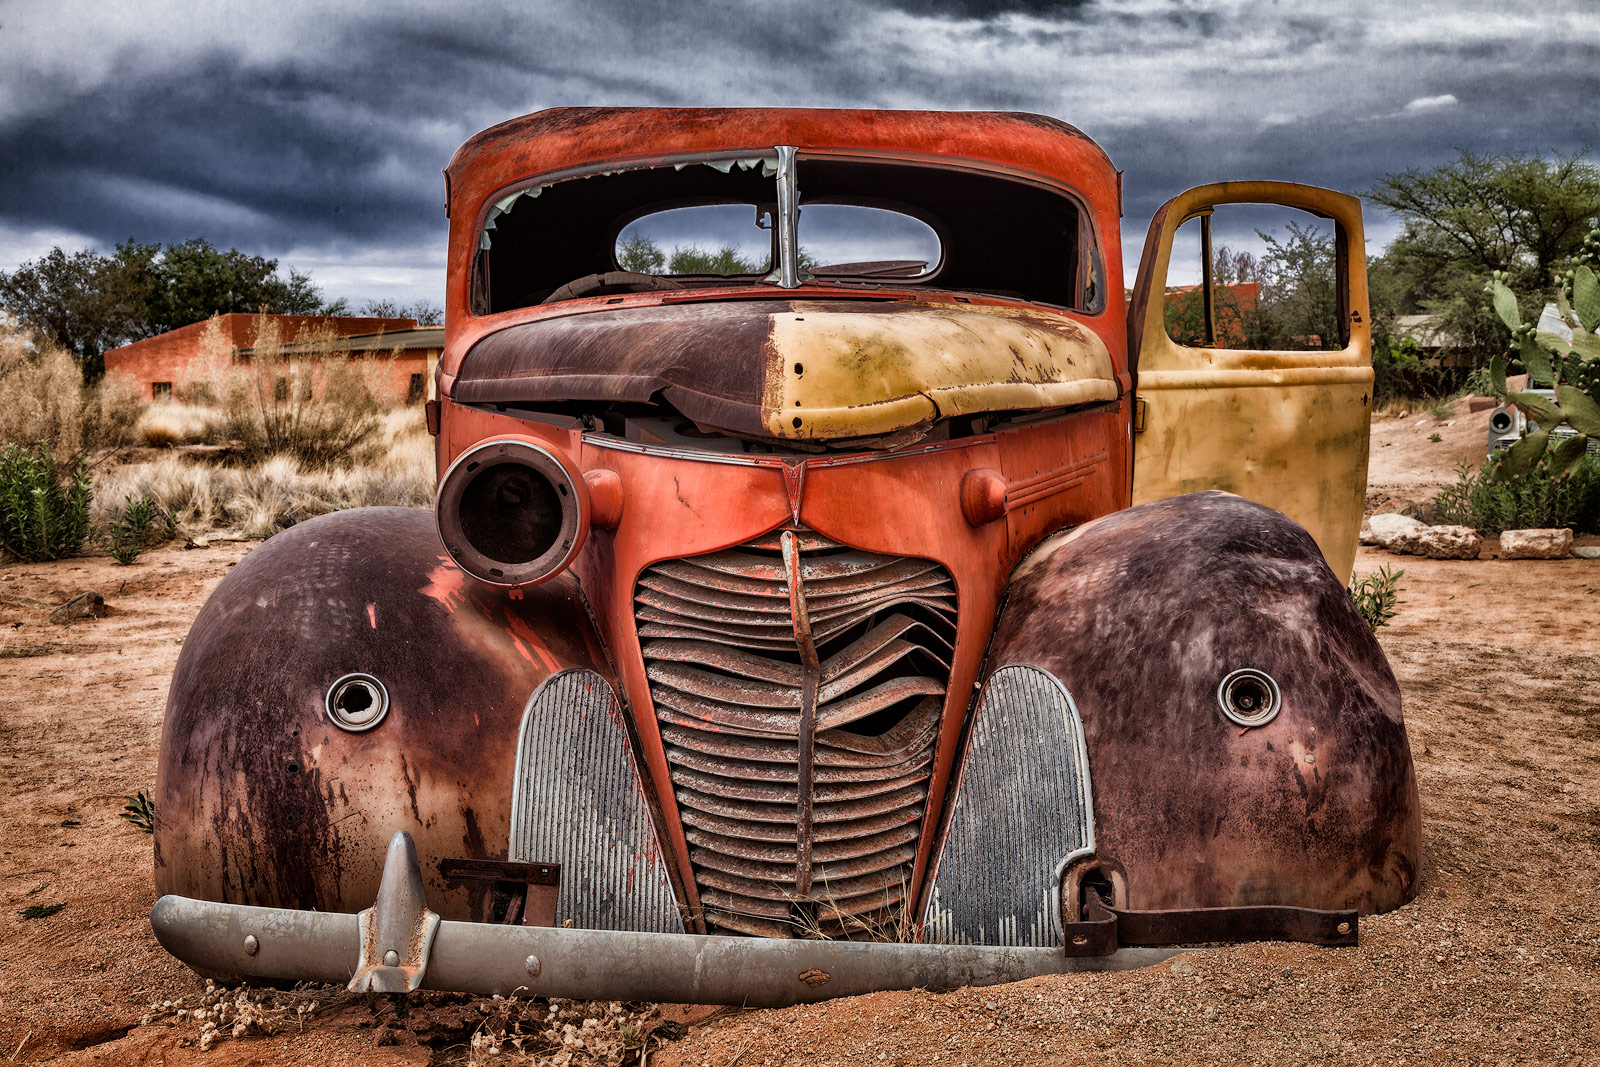 Dilapidated classic car at the edge of the Namibian desert